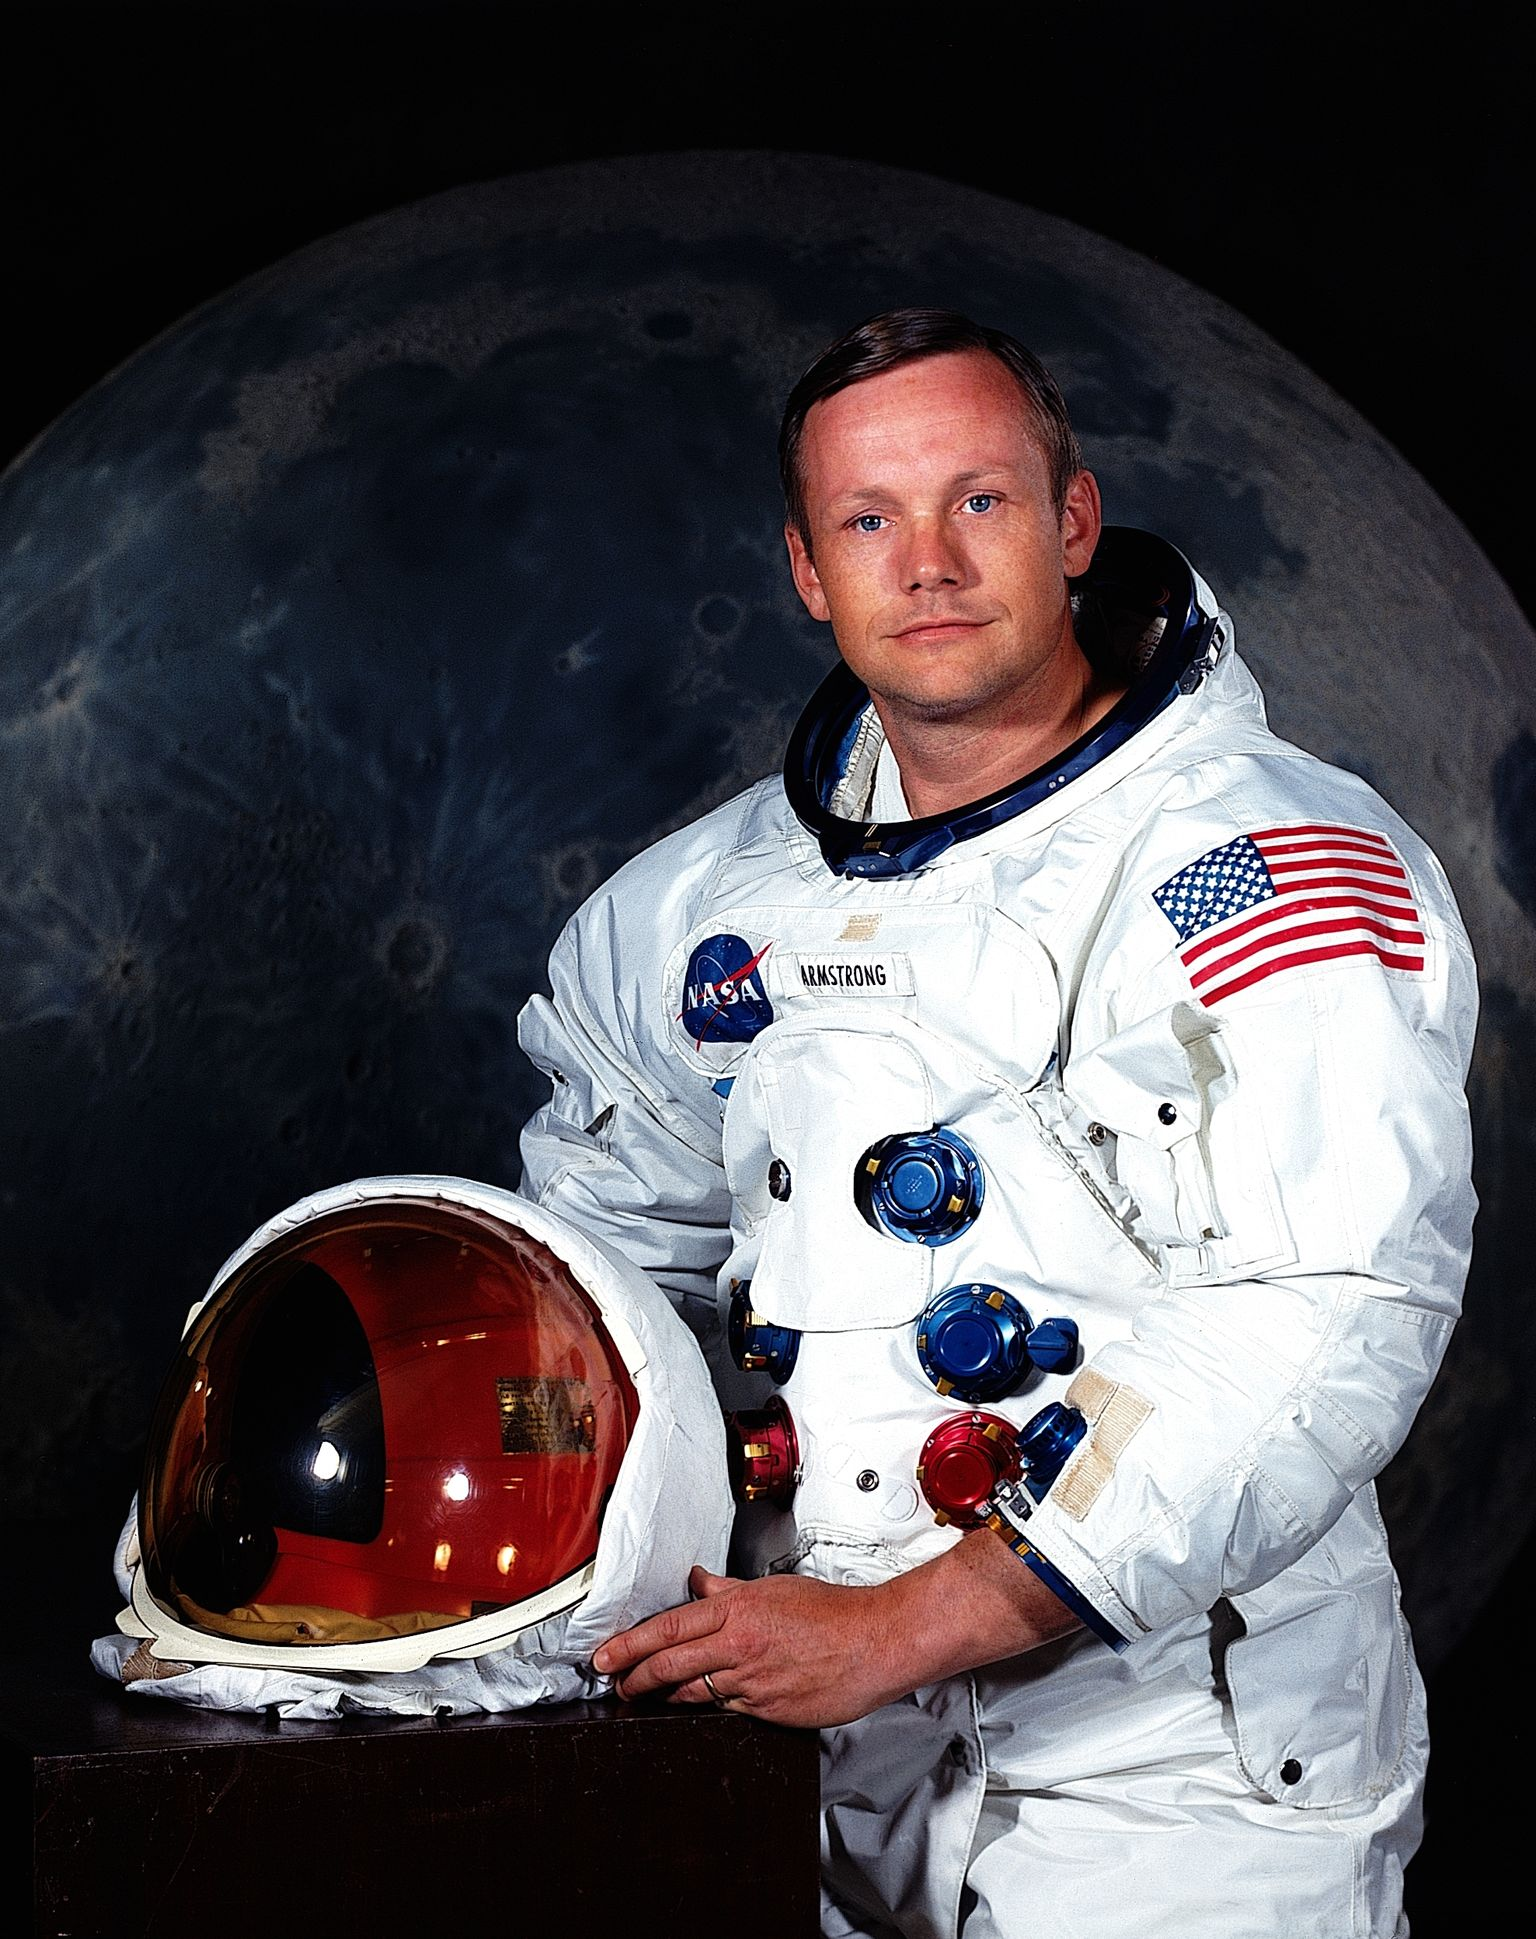 Astronaut Neil A. Armstrong, Commander of the Apollo 11 Lunar Landing Mission in 1969 | Source: Getty Images